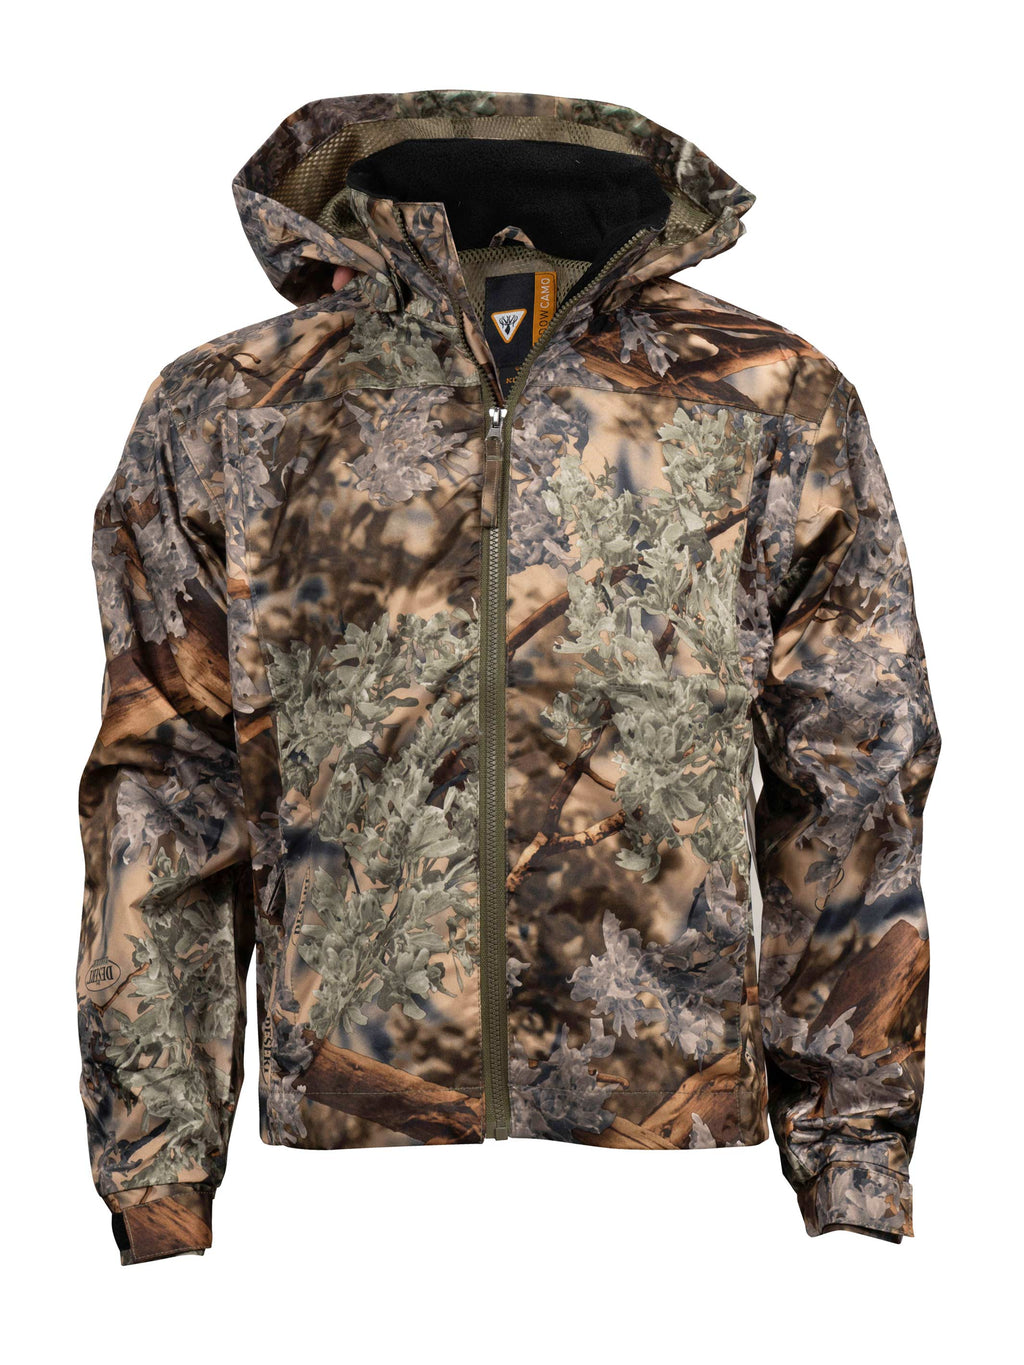 Kids Climatex Rain Jacket in Desert Shadow | King's Camo